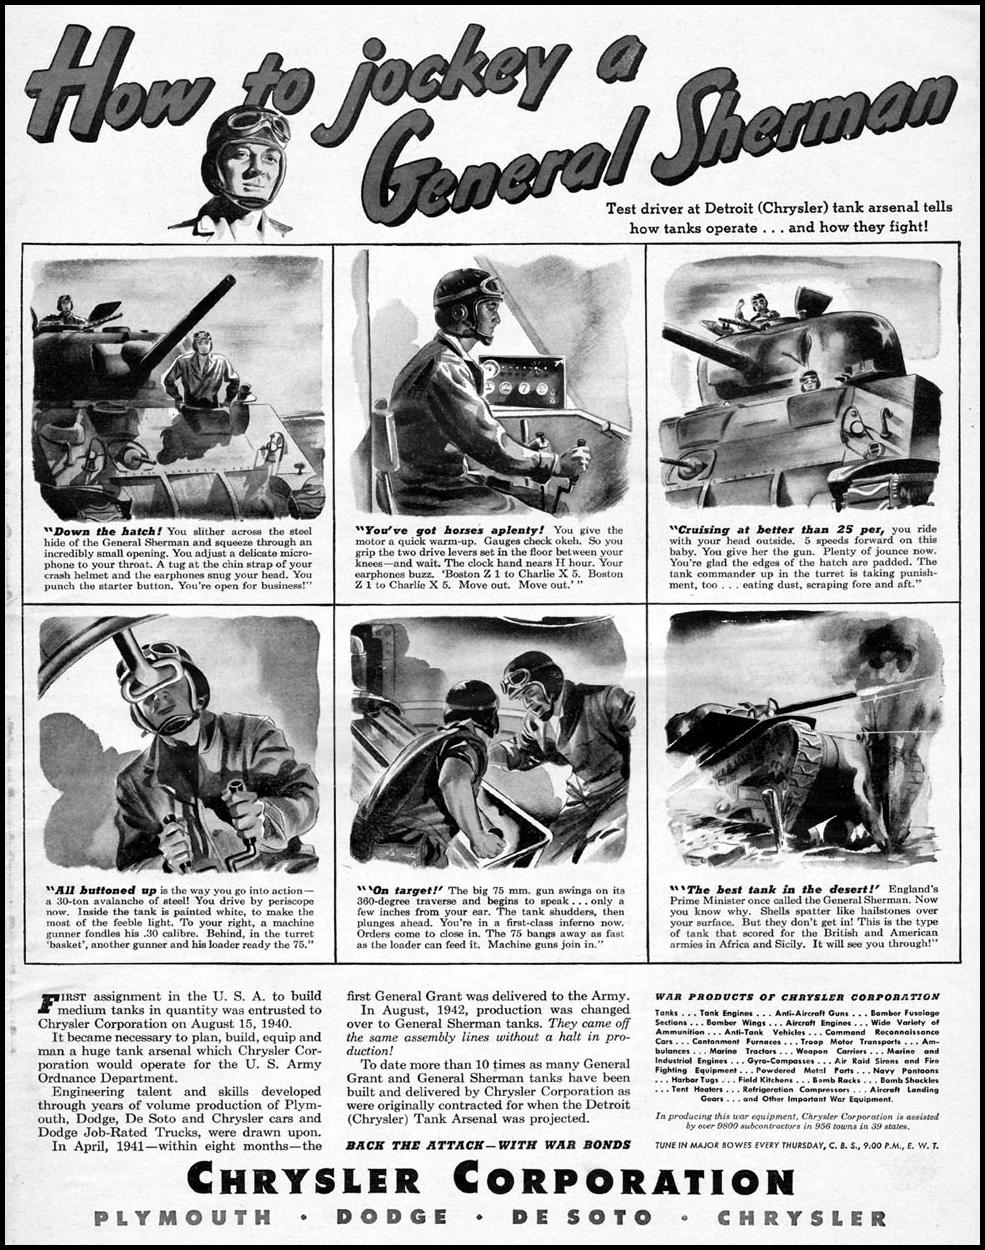 CHRYSLER WARTIME PRODUCTION